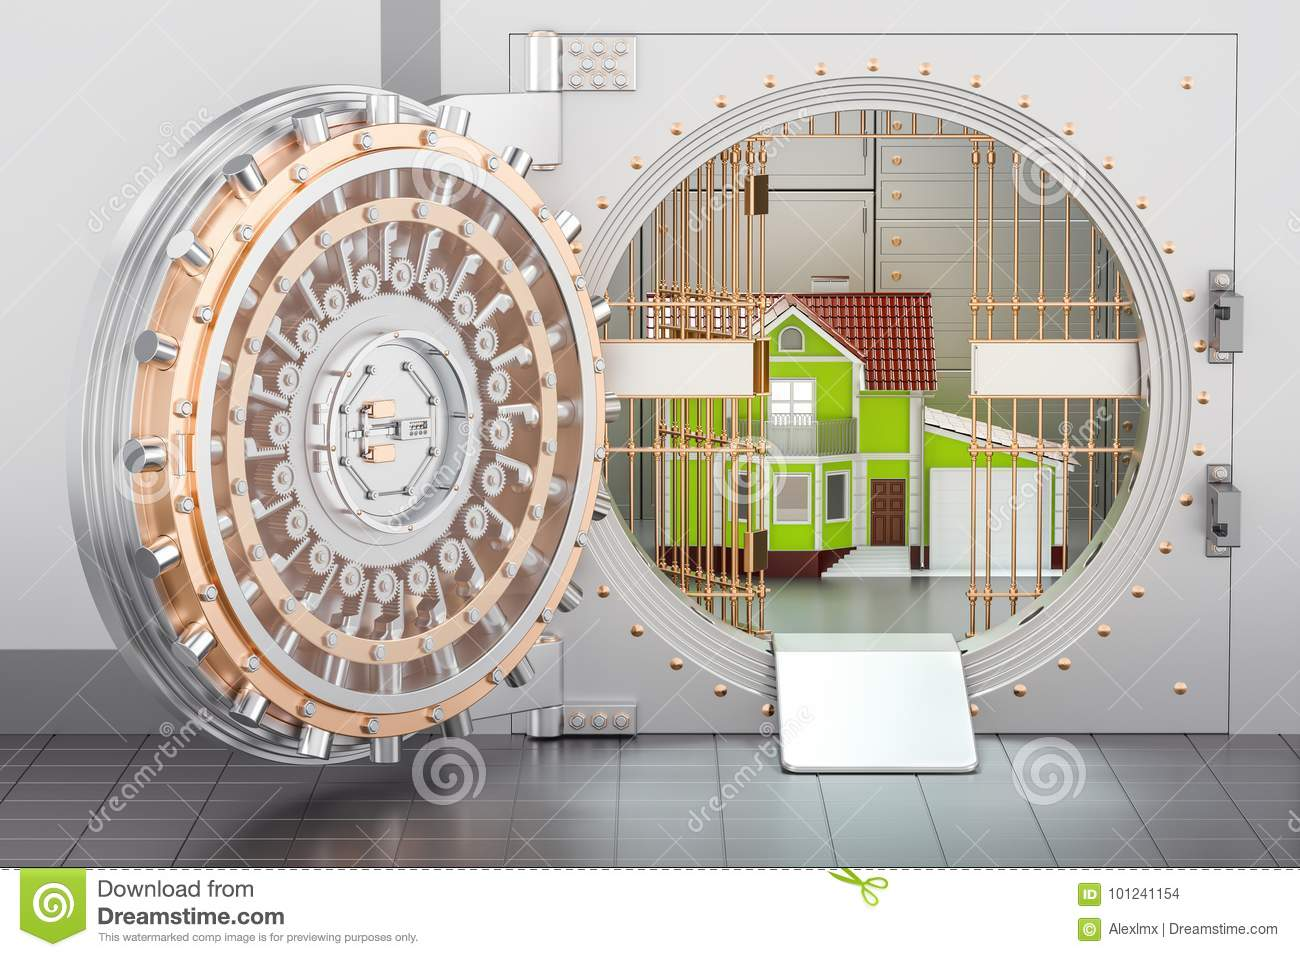 Fine Home Inside Bank Vault House Security And Protection Download Free Architecture Designs Intelgarnamadebymaigaardcom